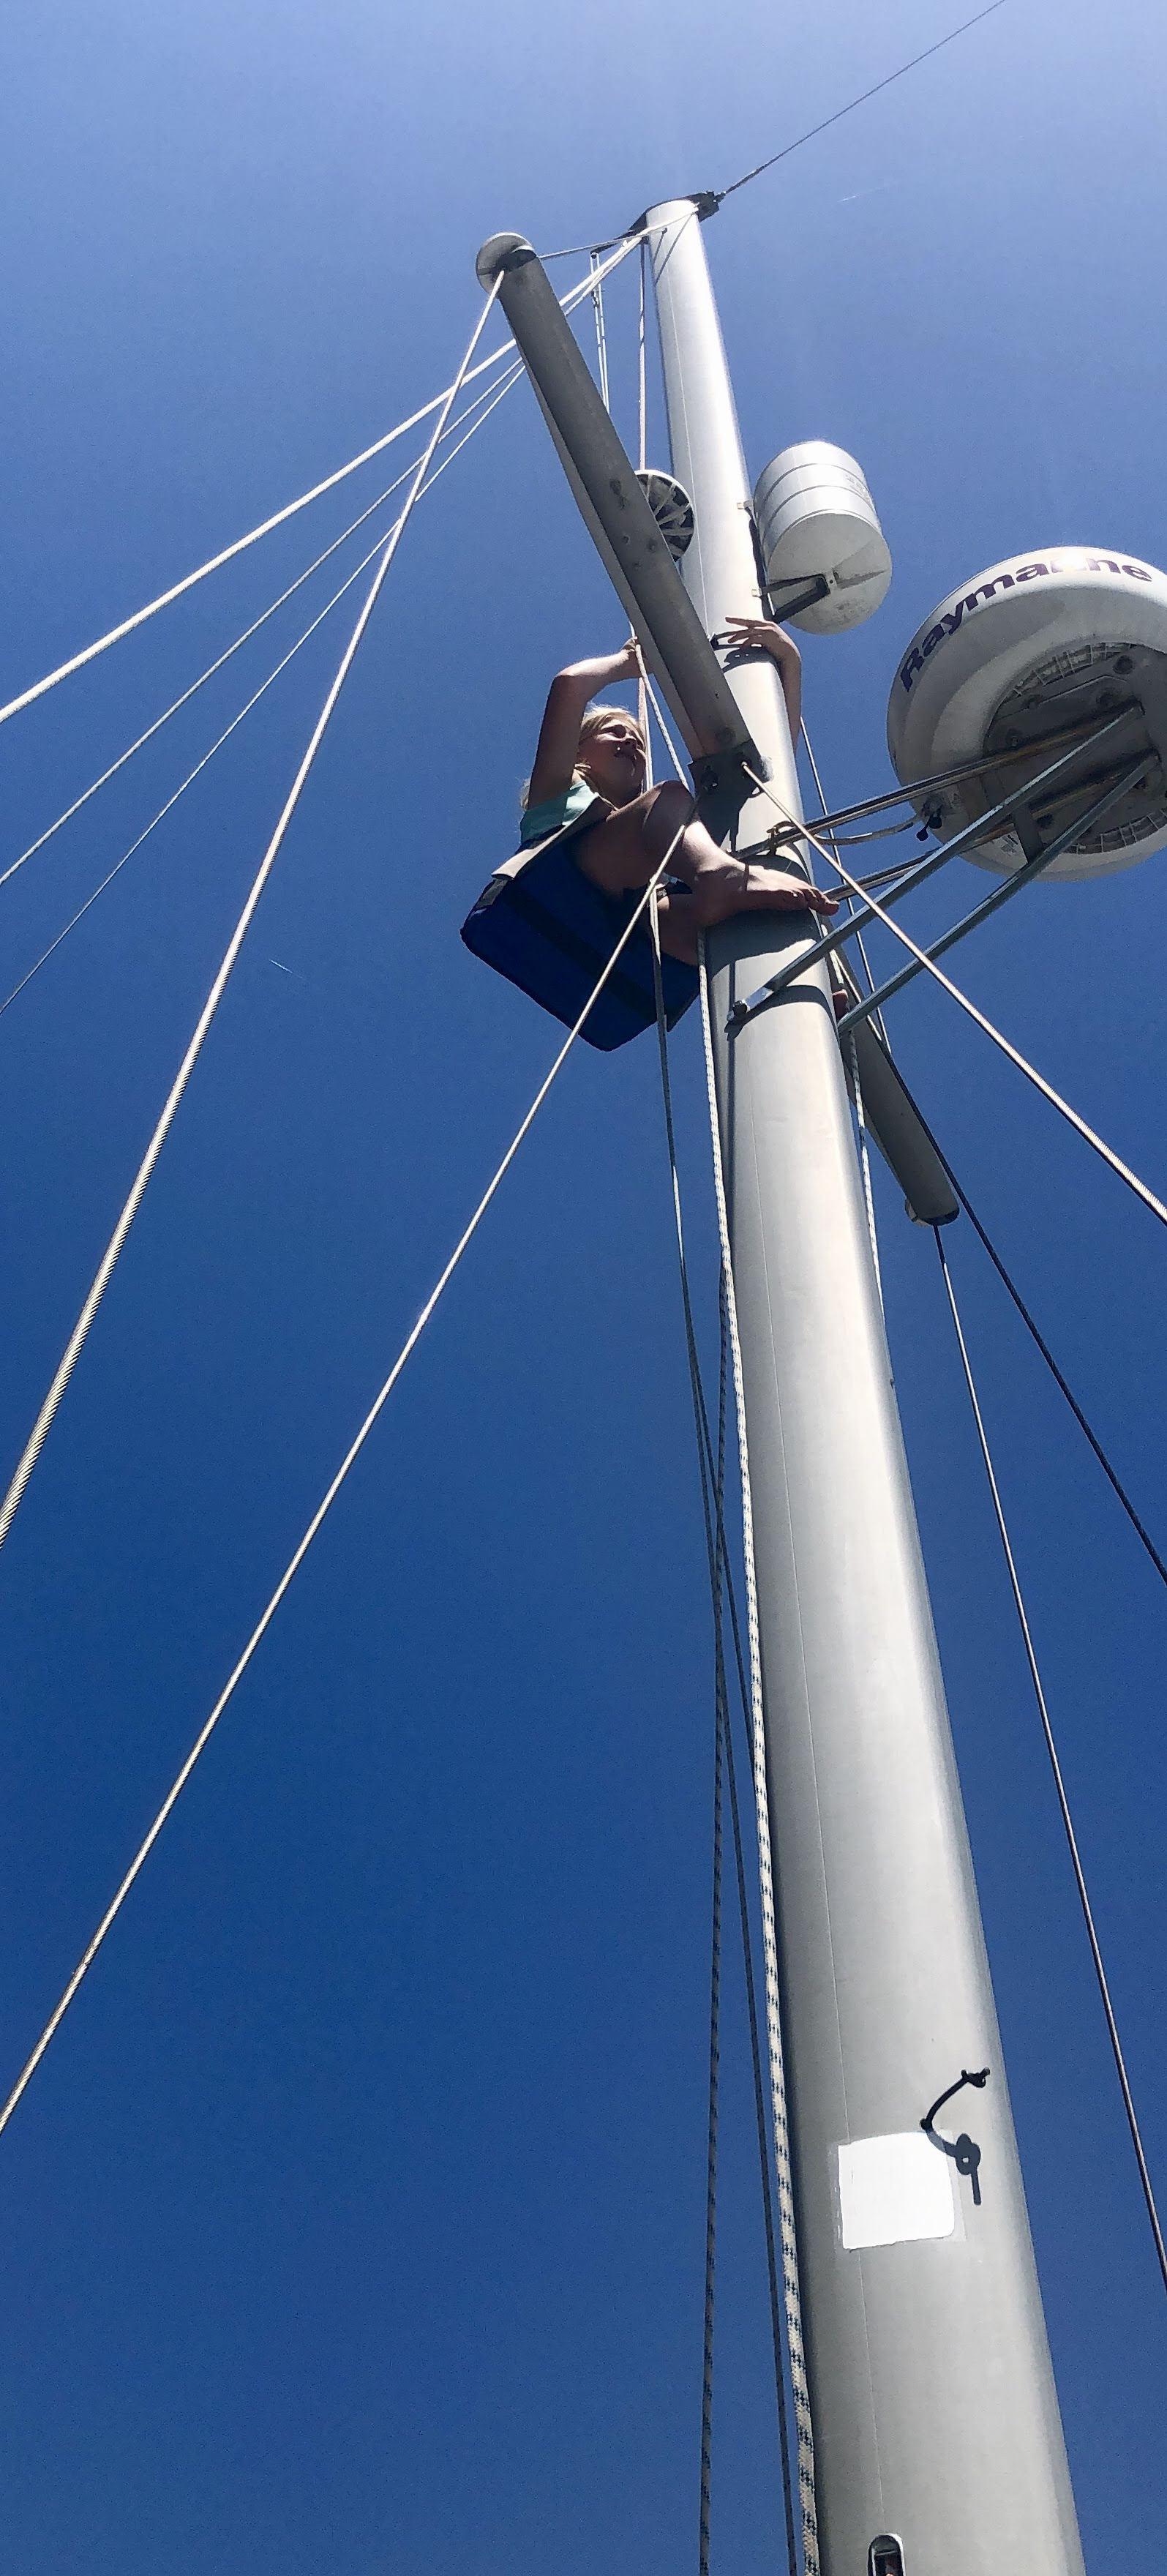 Audrey up the mast